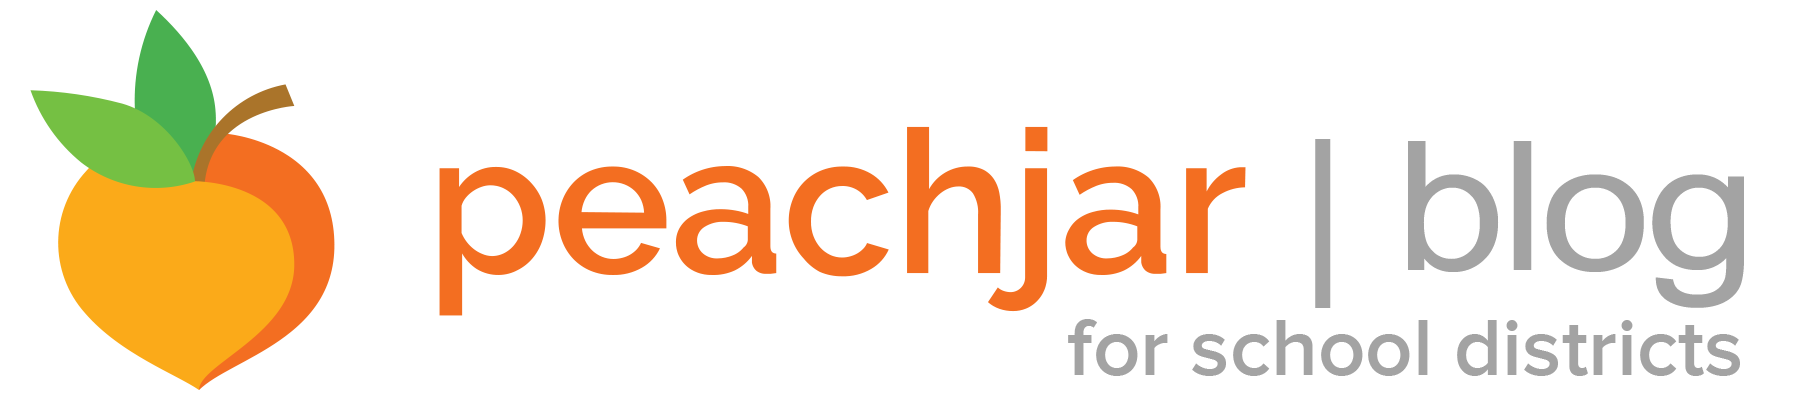 Peachjar-blog-logo-2